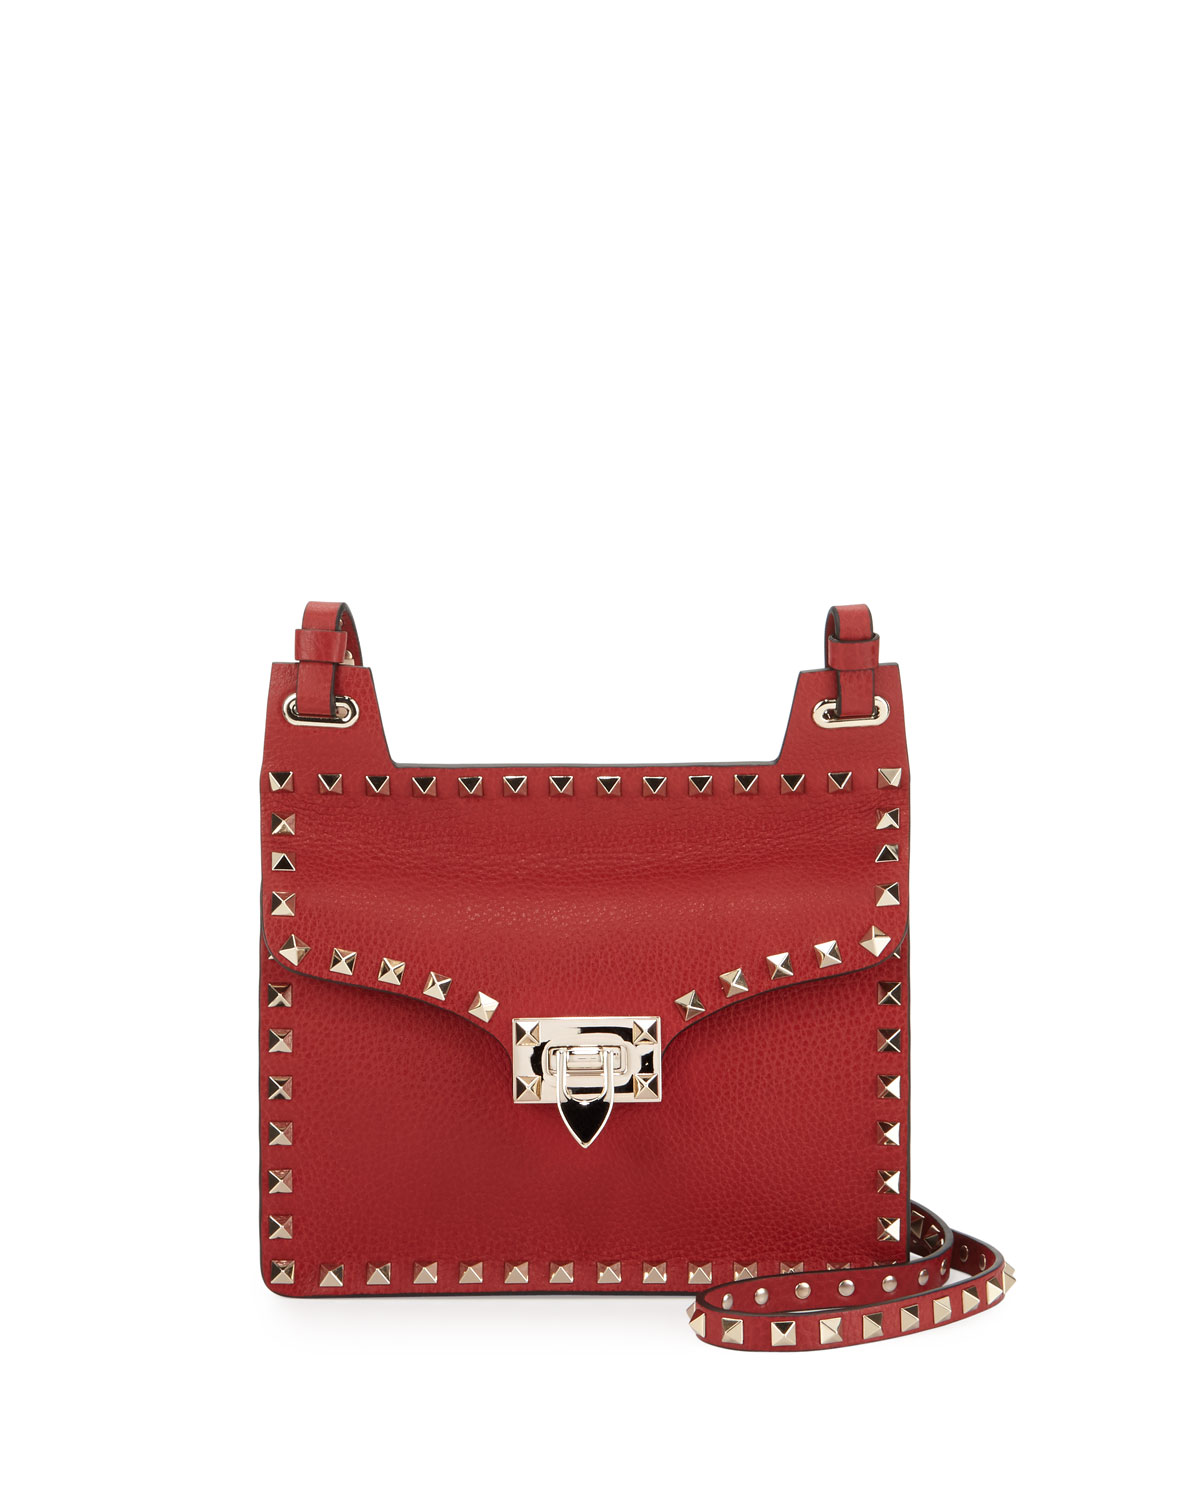 Rockstud Lock-Flap Square Shoulder Bag, Red - Valentino